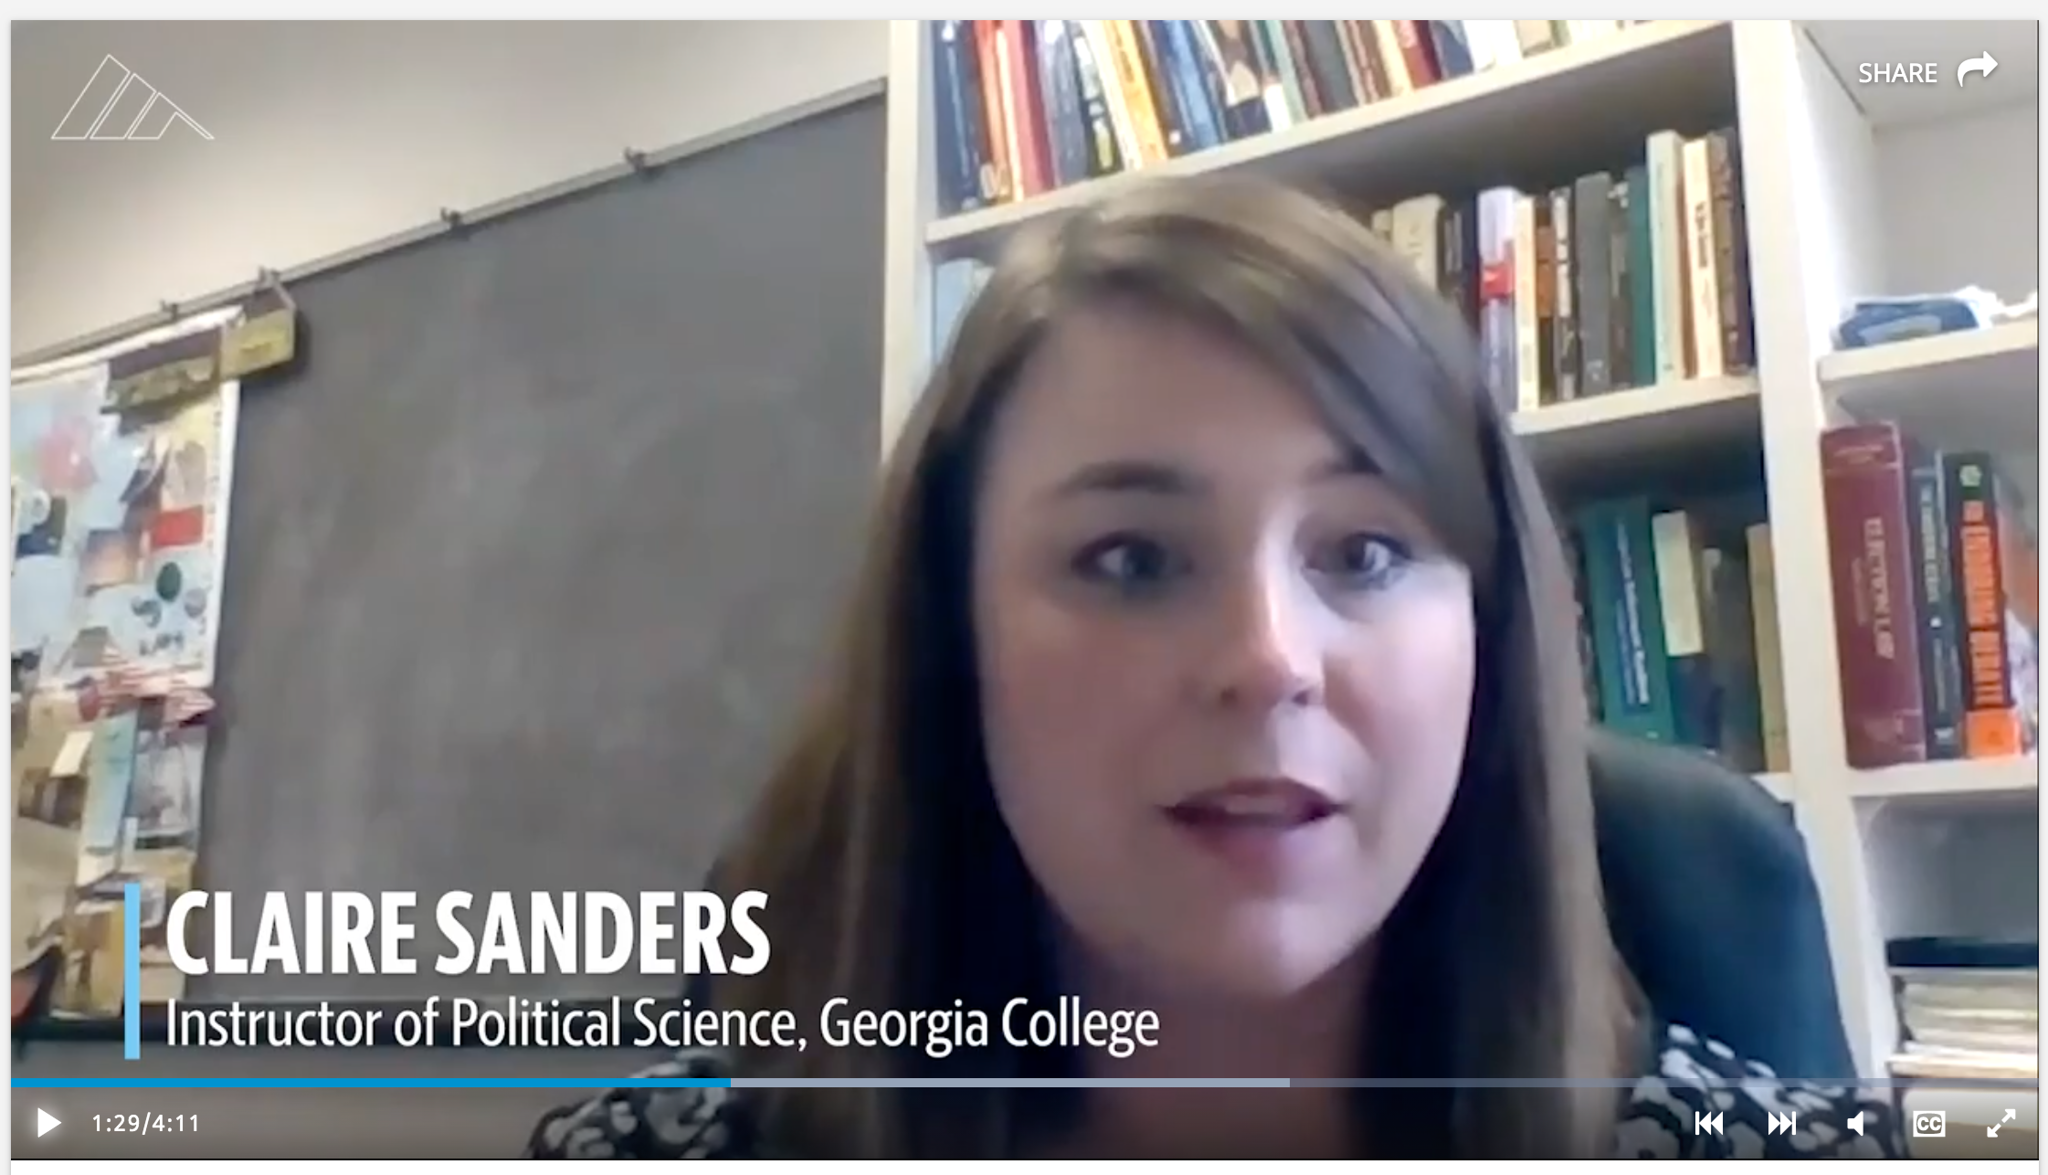 Claire Sanders in the McClatchy video.